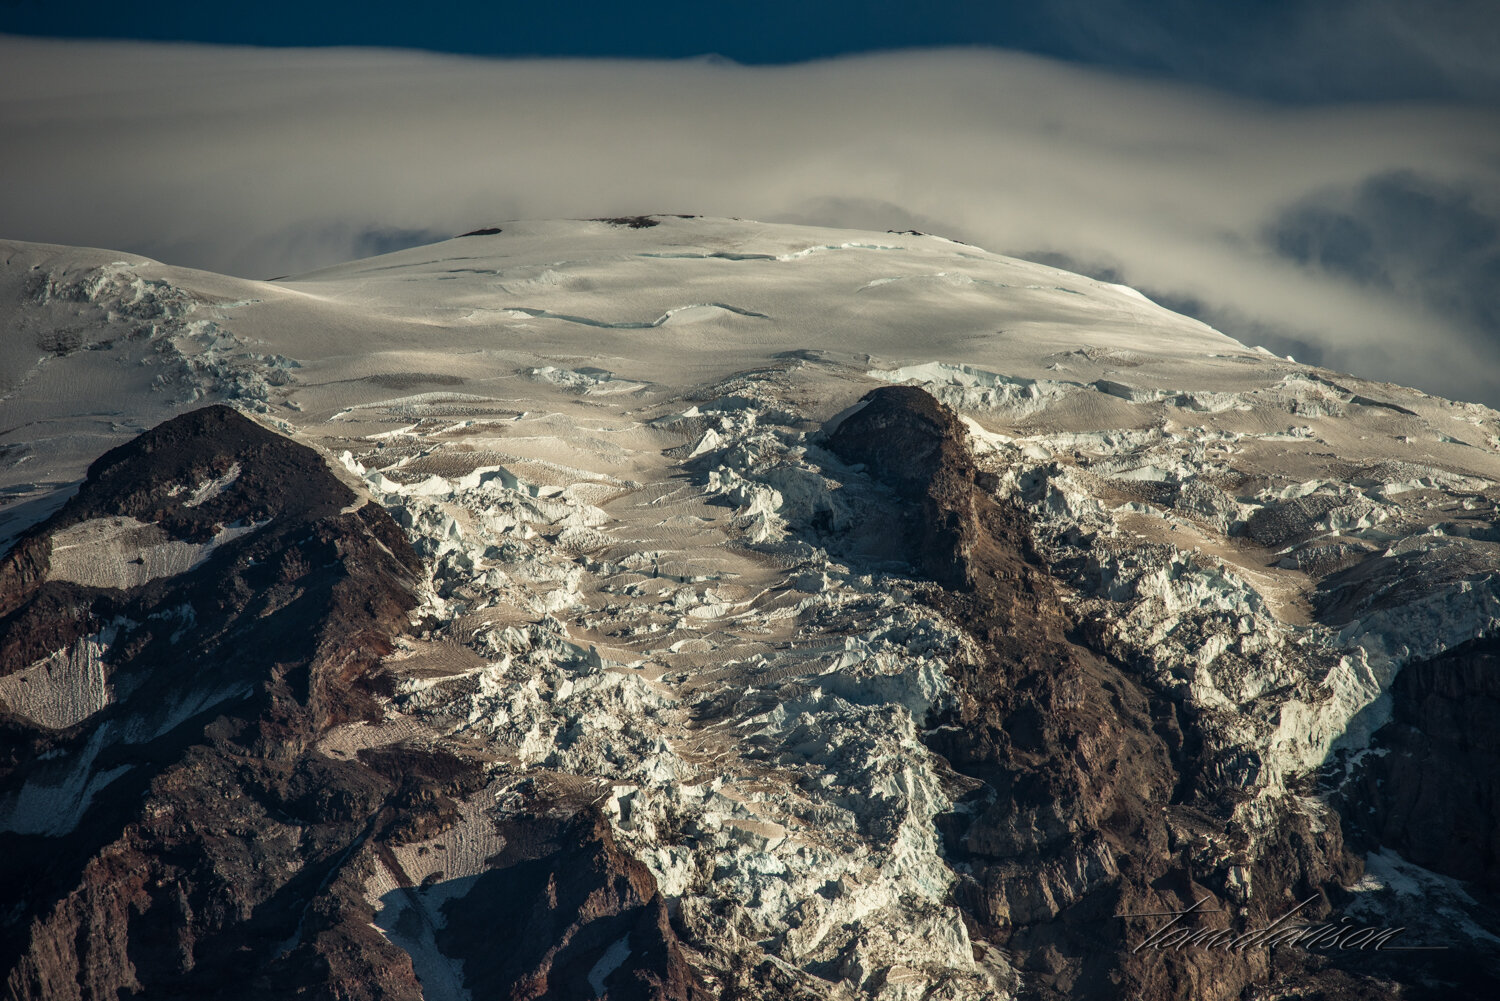 Telephoto capture of glacial ice.